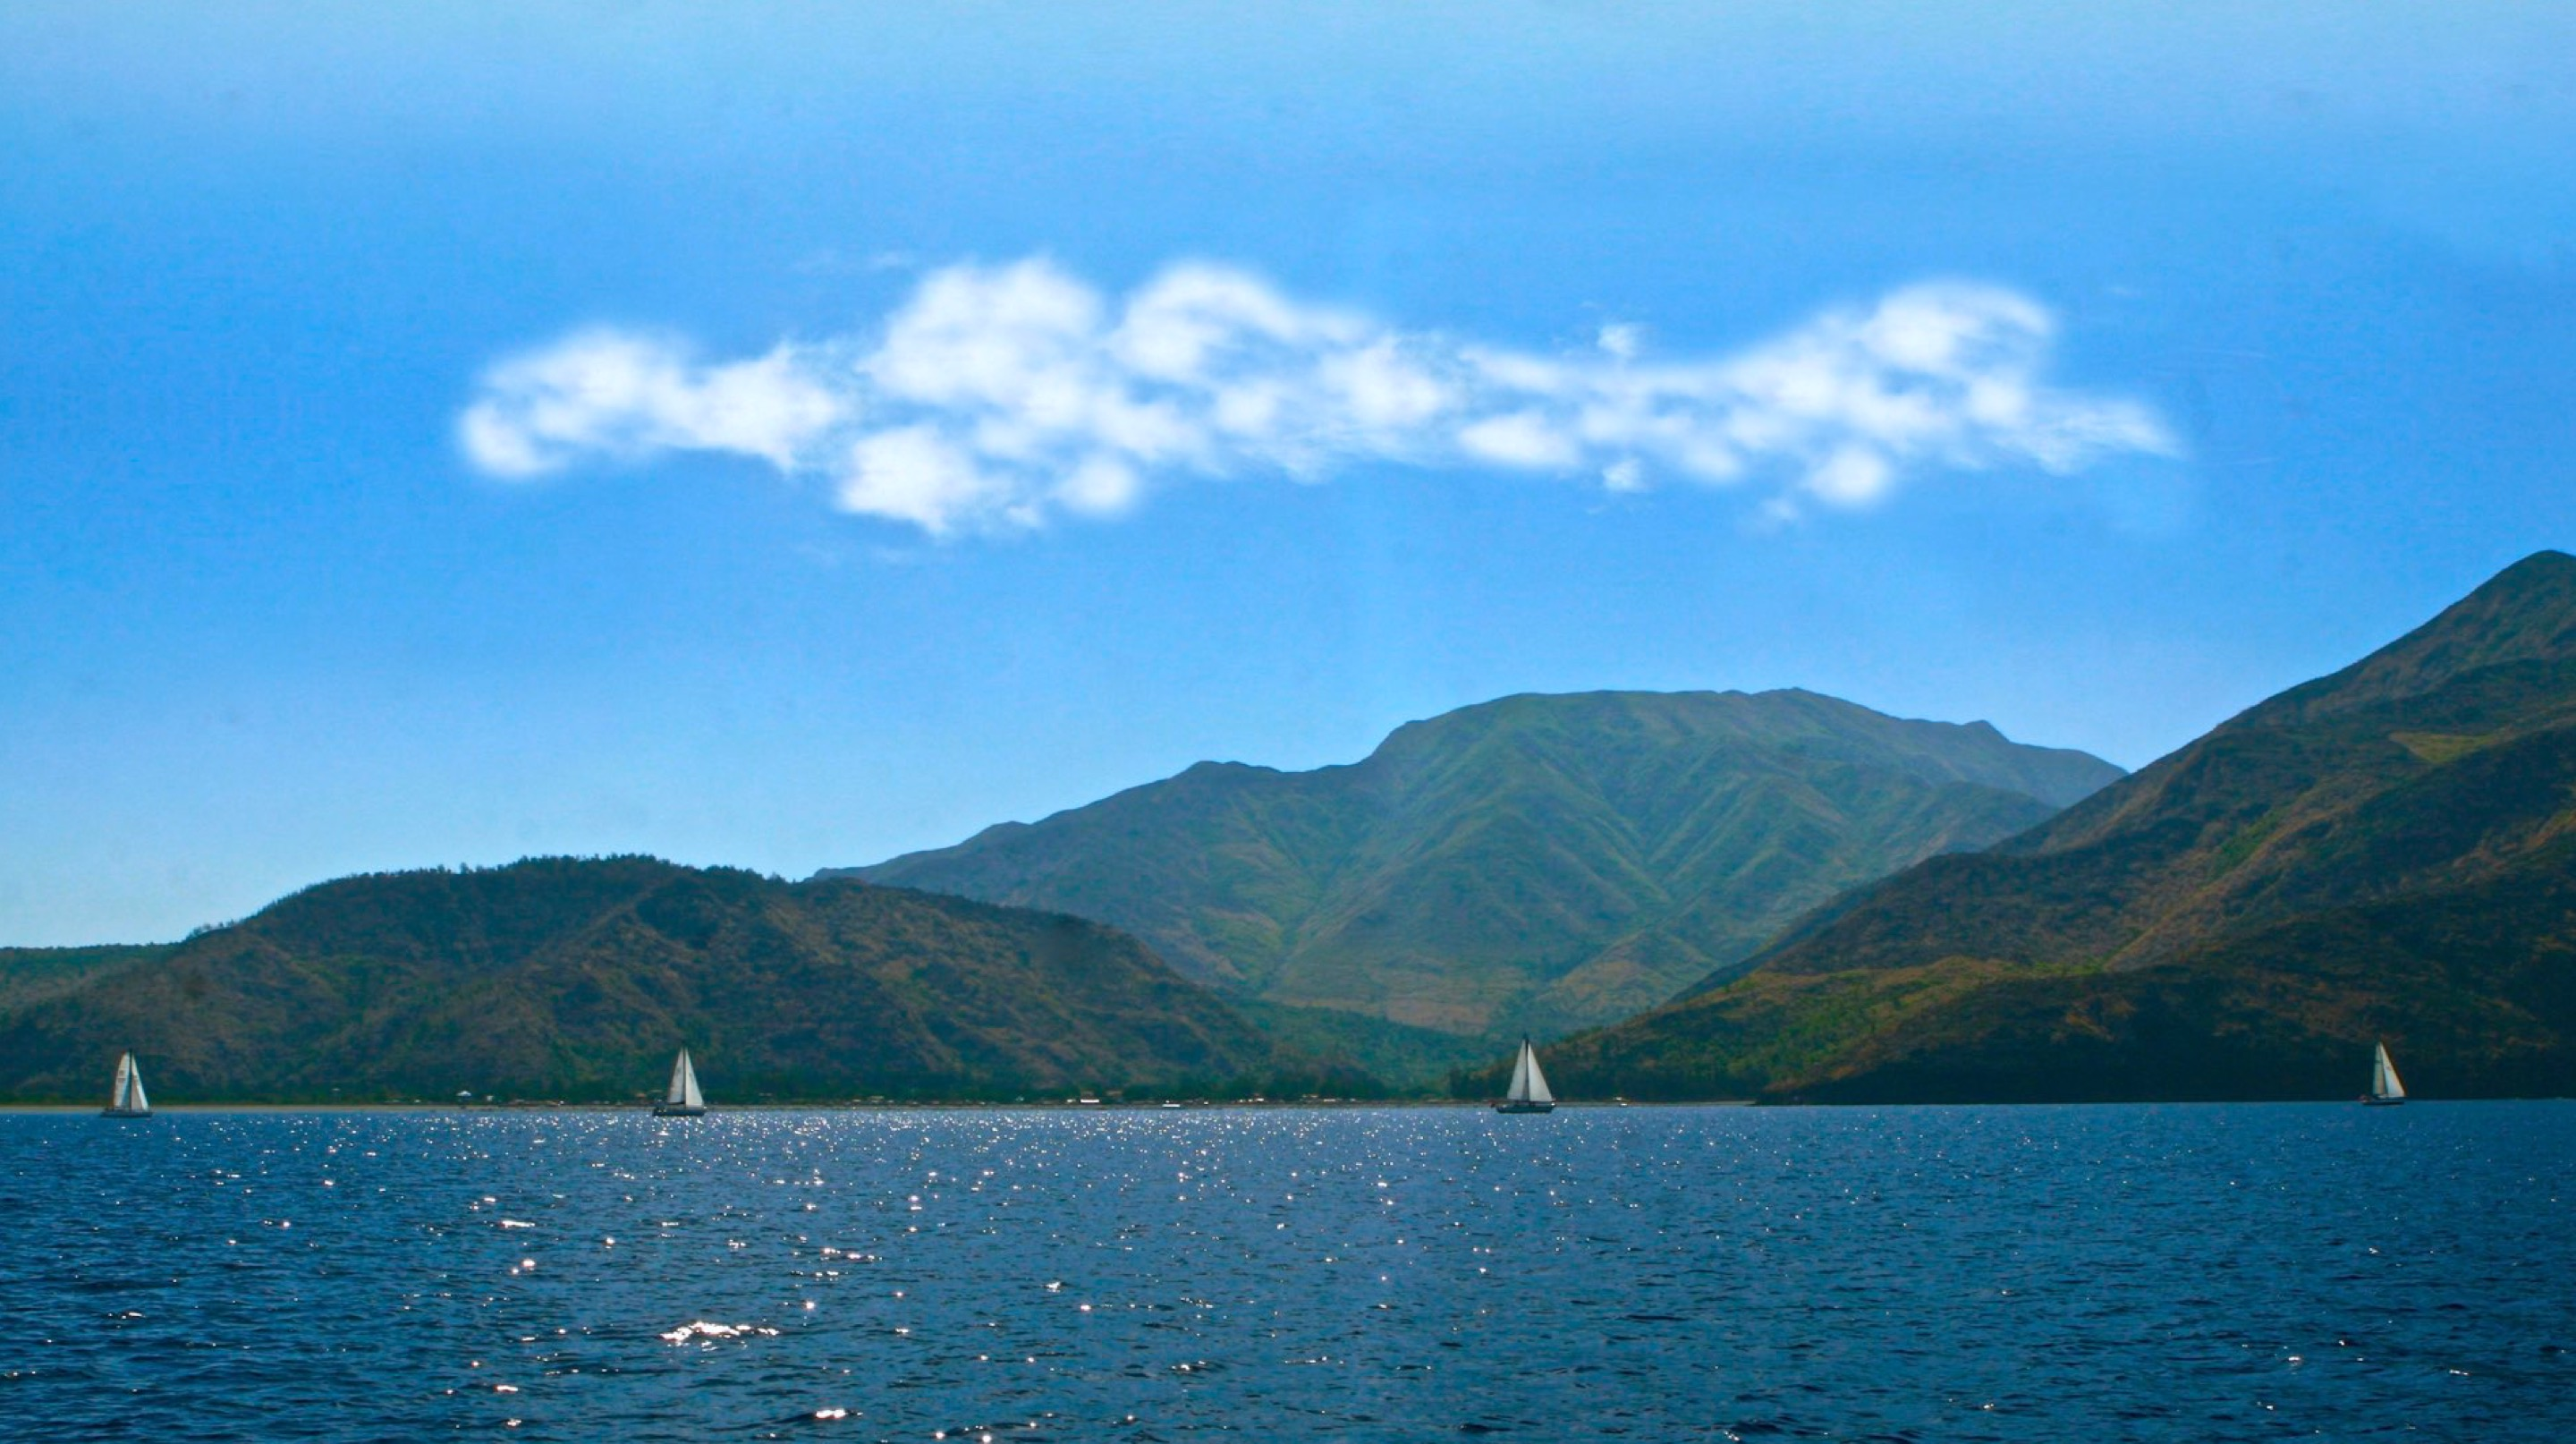 The coastline of Zambales and Bataan in the Philippines are rugged